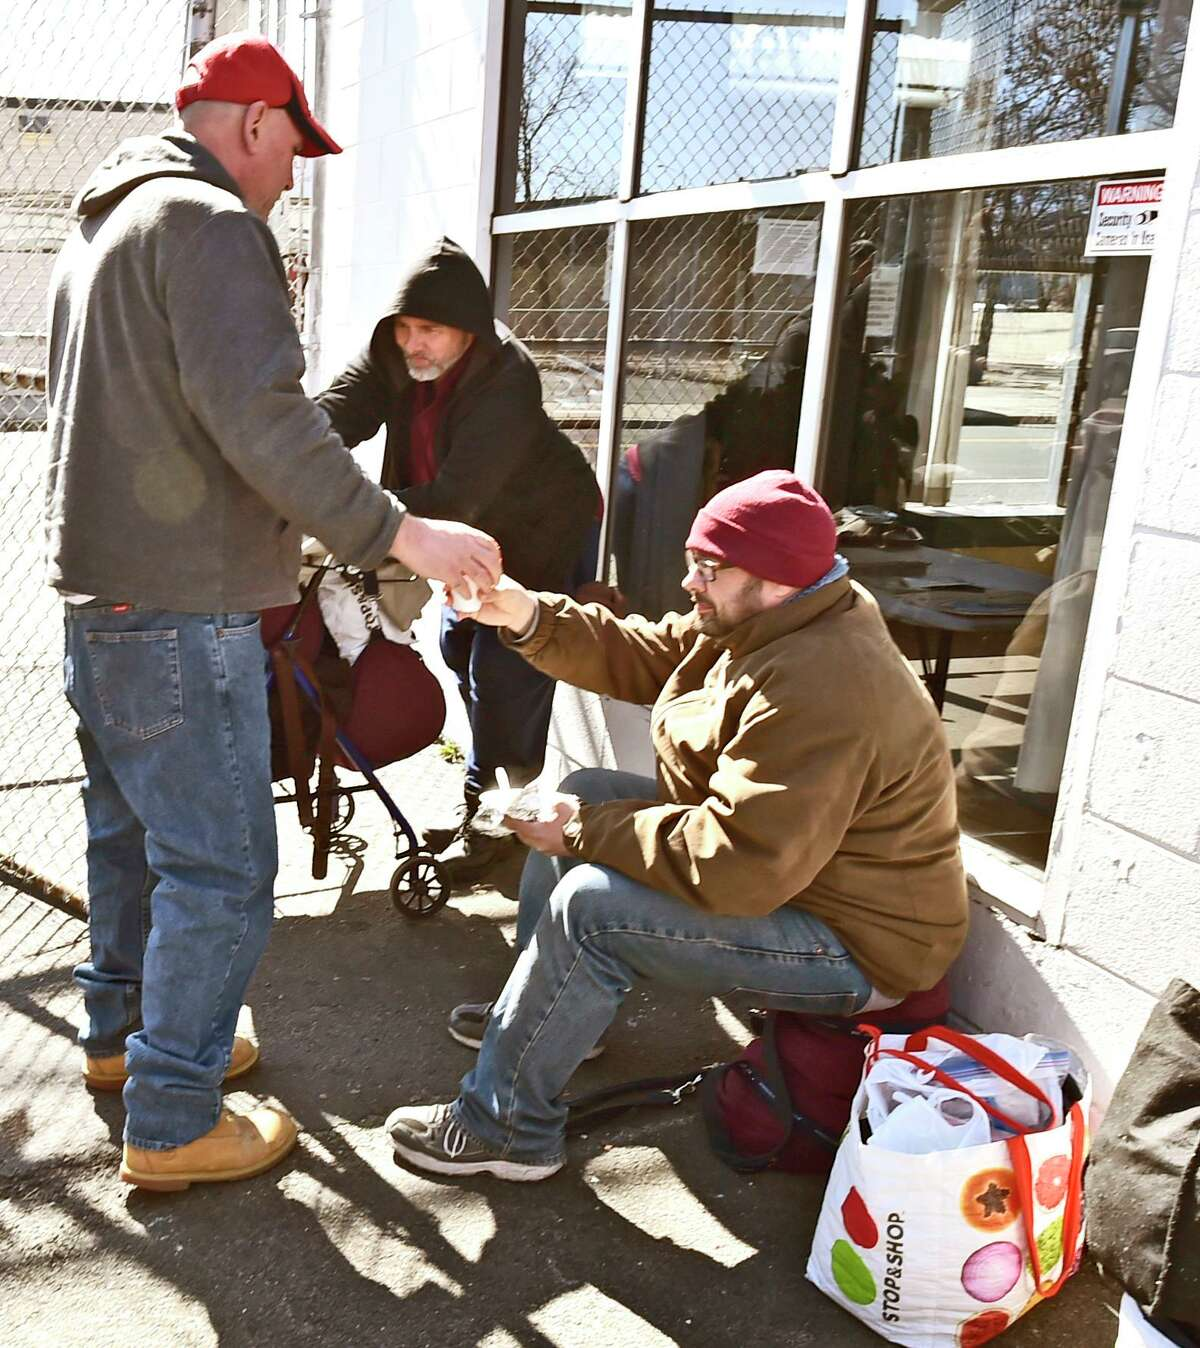 New Haven, Connecticut - Friday, March 16, 2020: Mike Grillo of the 18-month program discipleship program of the 180 Center of New Haven homeless ministry on Grand Avenue in New Haven, left, distributes coffee outside to those who received a a